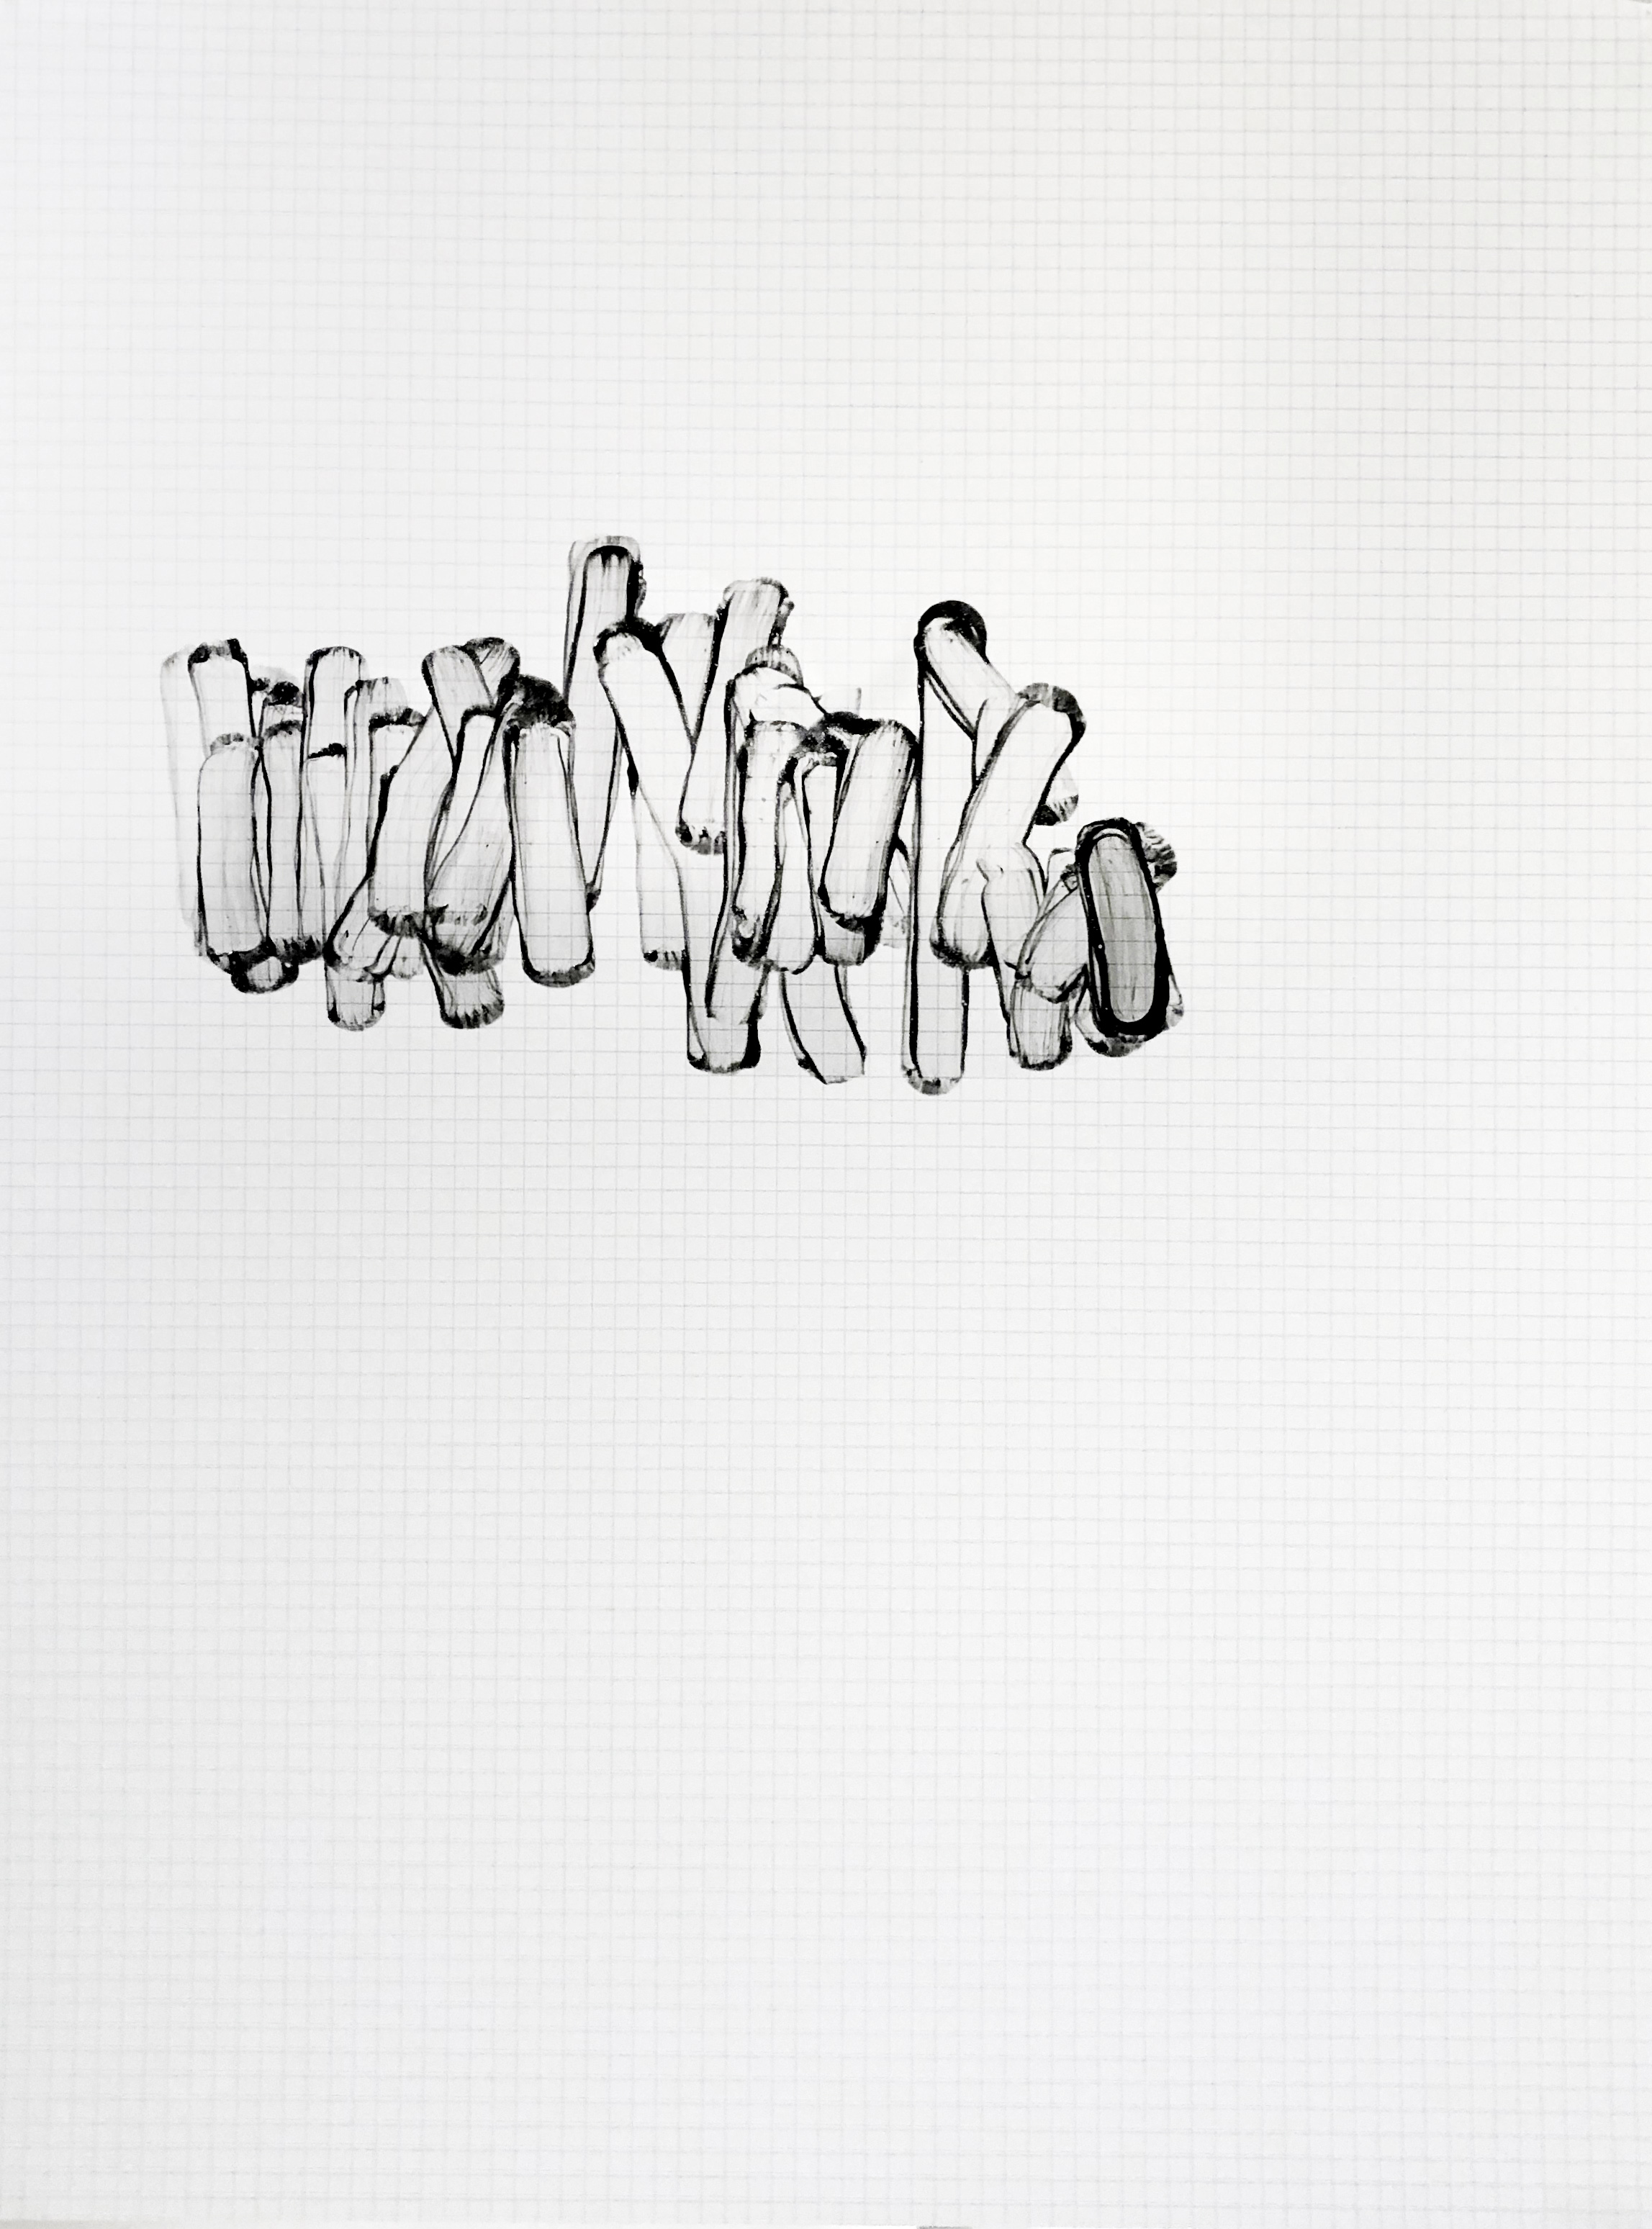 Sharon Louden,  Flaps , 1998, Graphite and gel medium on gridded mylar, 24 x 18 inches unframed (61 x 45.7 cm)